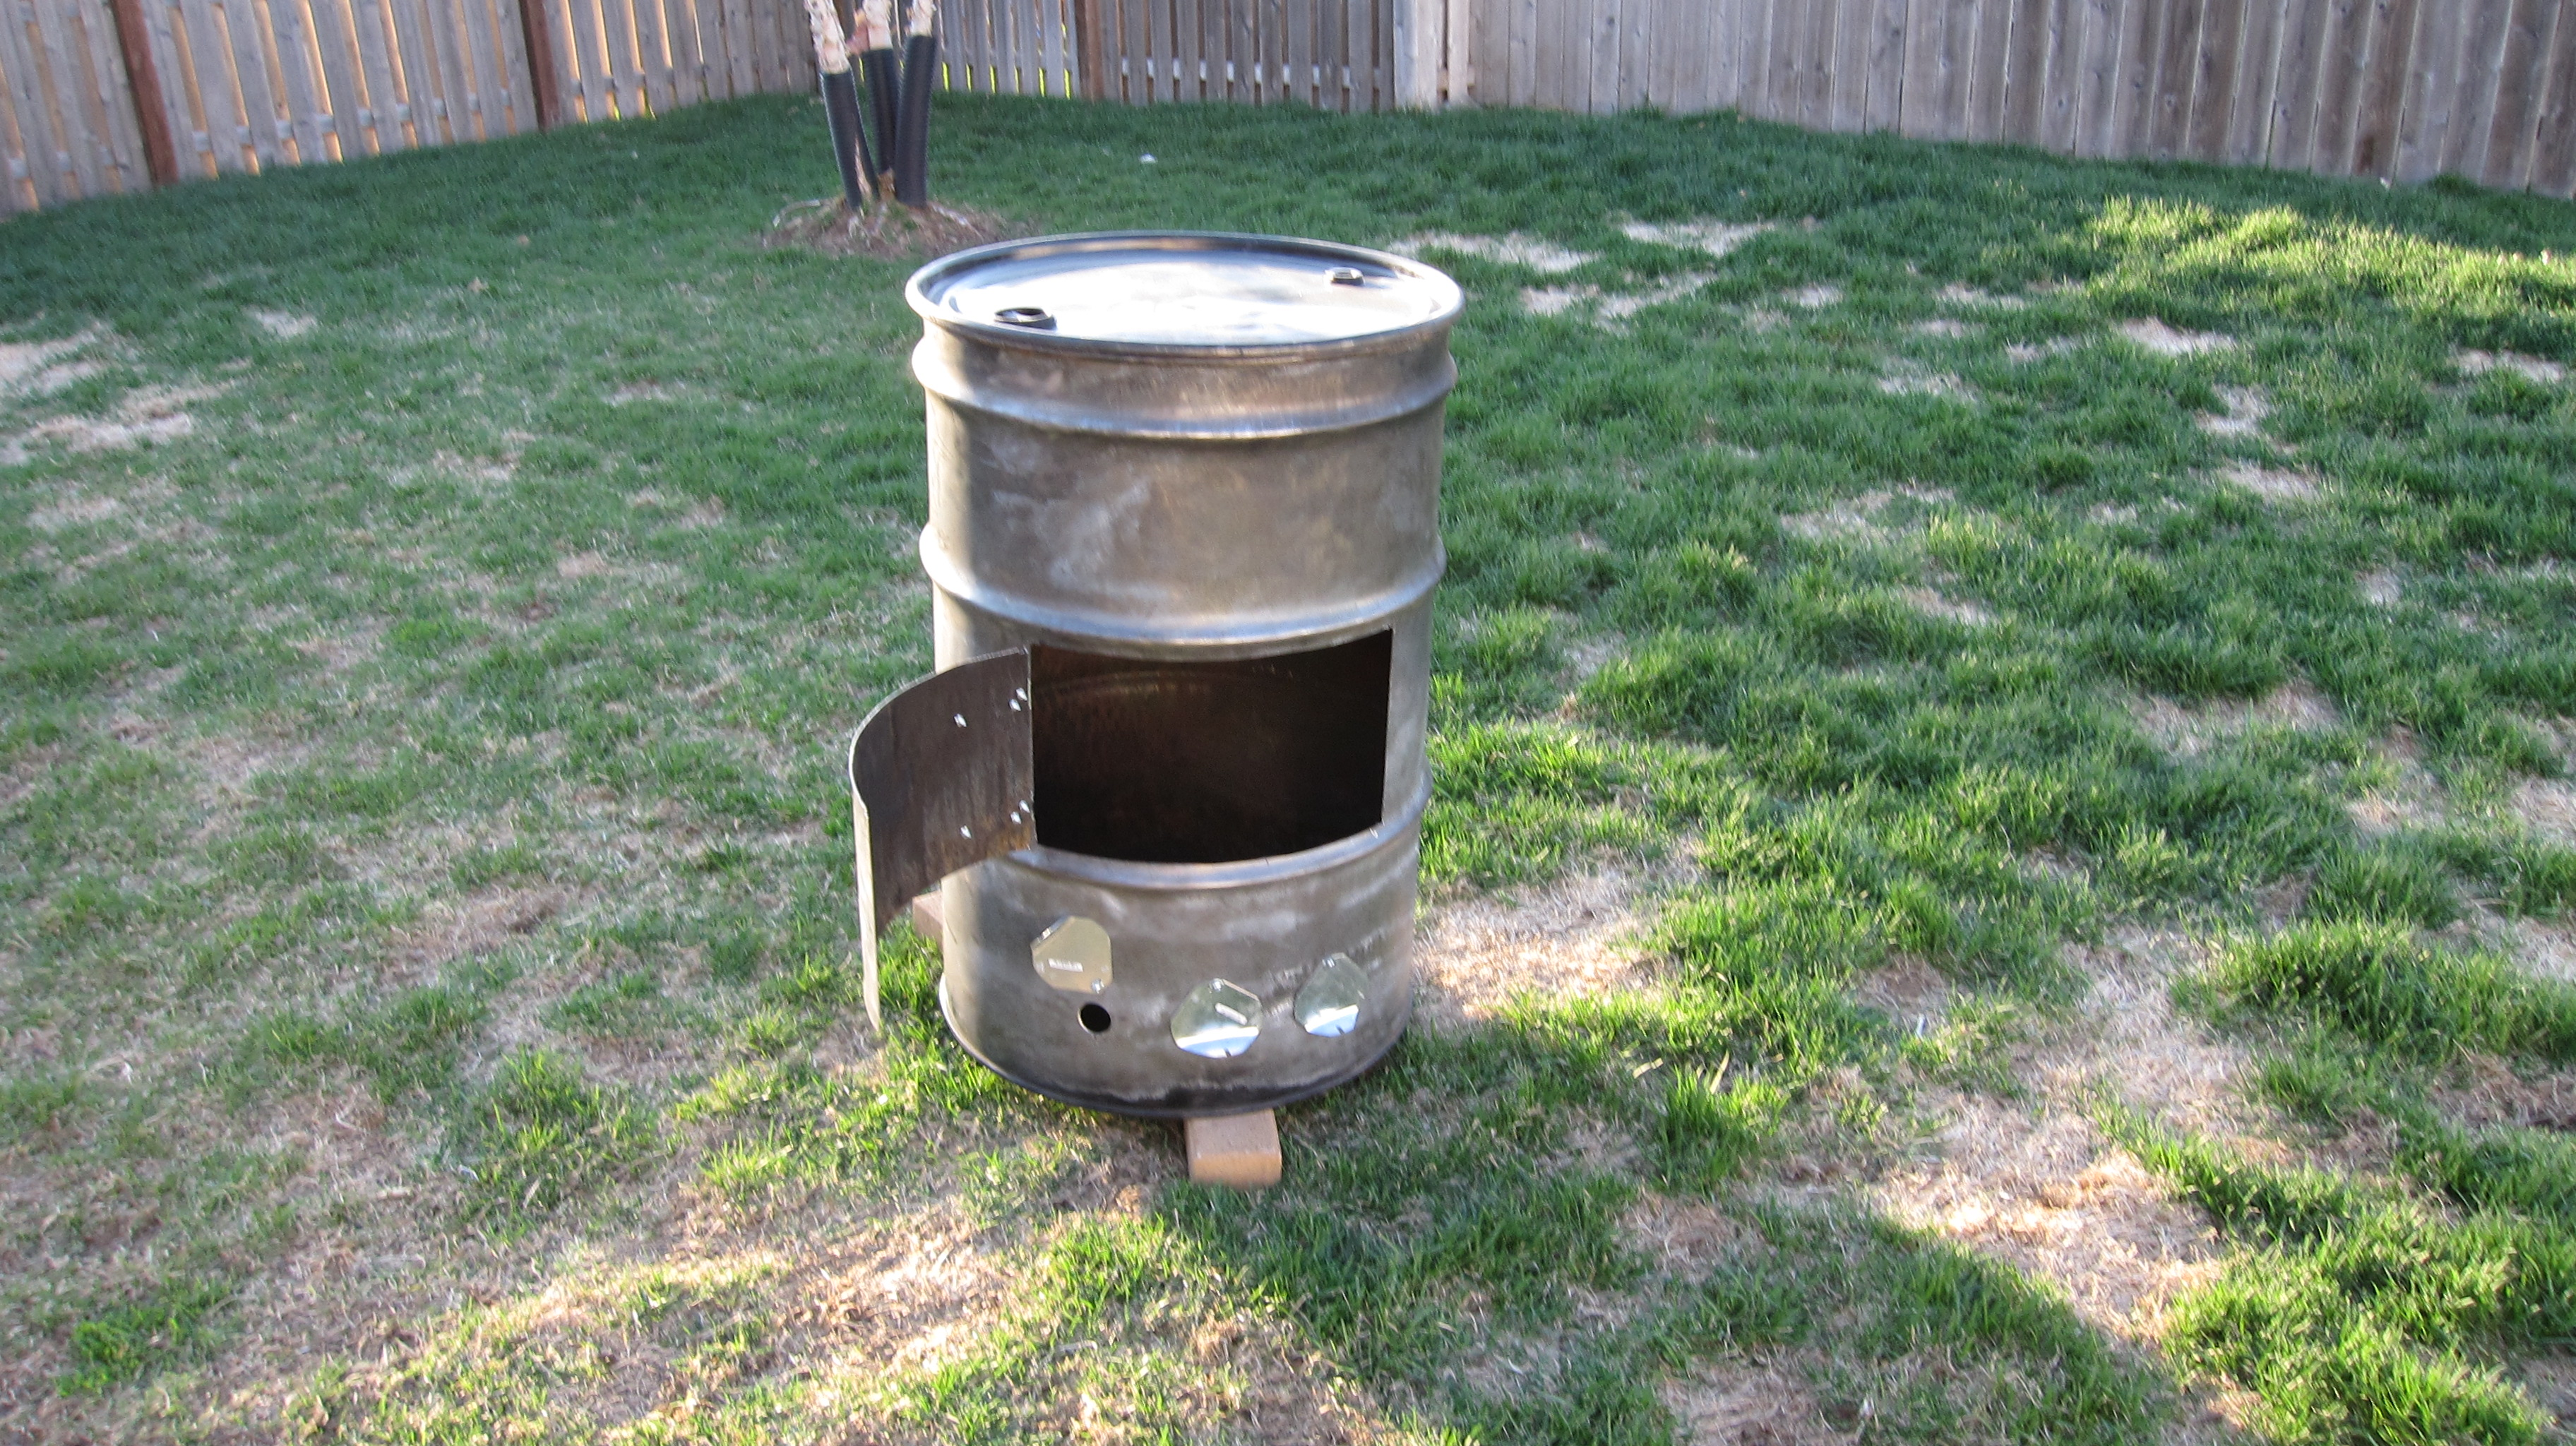 55 Gallon Drum Smoker Project